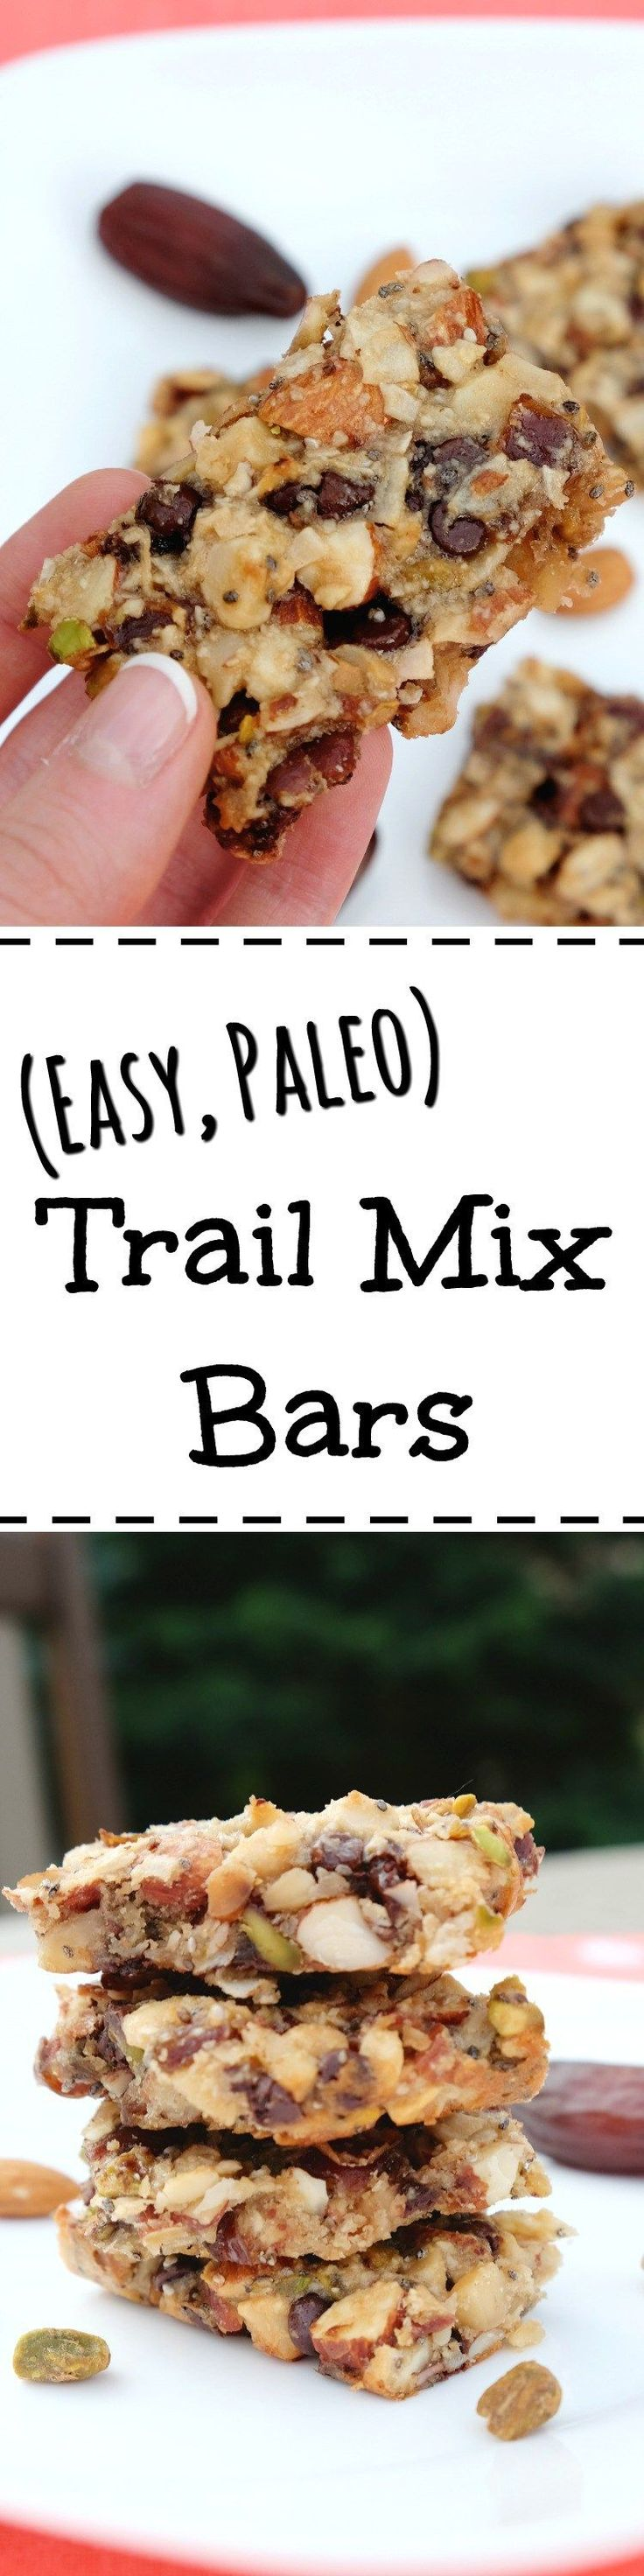 Paleo Trail Mix Bars | Mix up these customizable paleo trail mix bars in under a half an hour and have them ready to grab and go for your busy week. These convenient bars are packed with all the flavors of your favorite trail mix with no unpronounceable i (Trail Mix Kids)